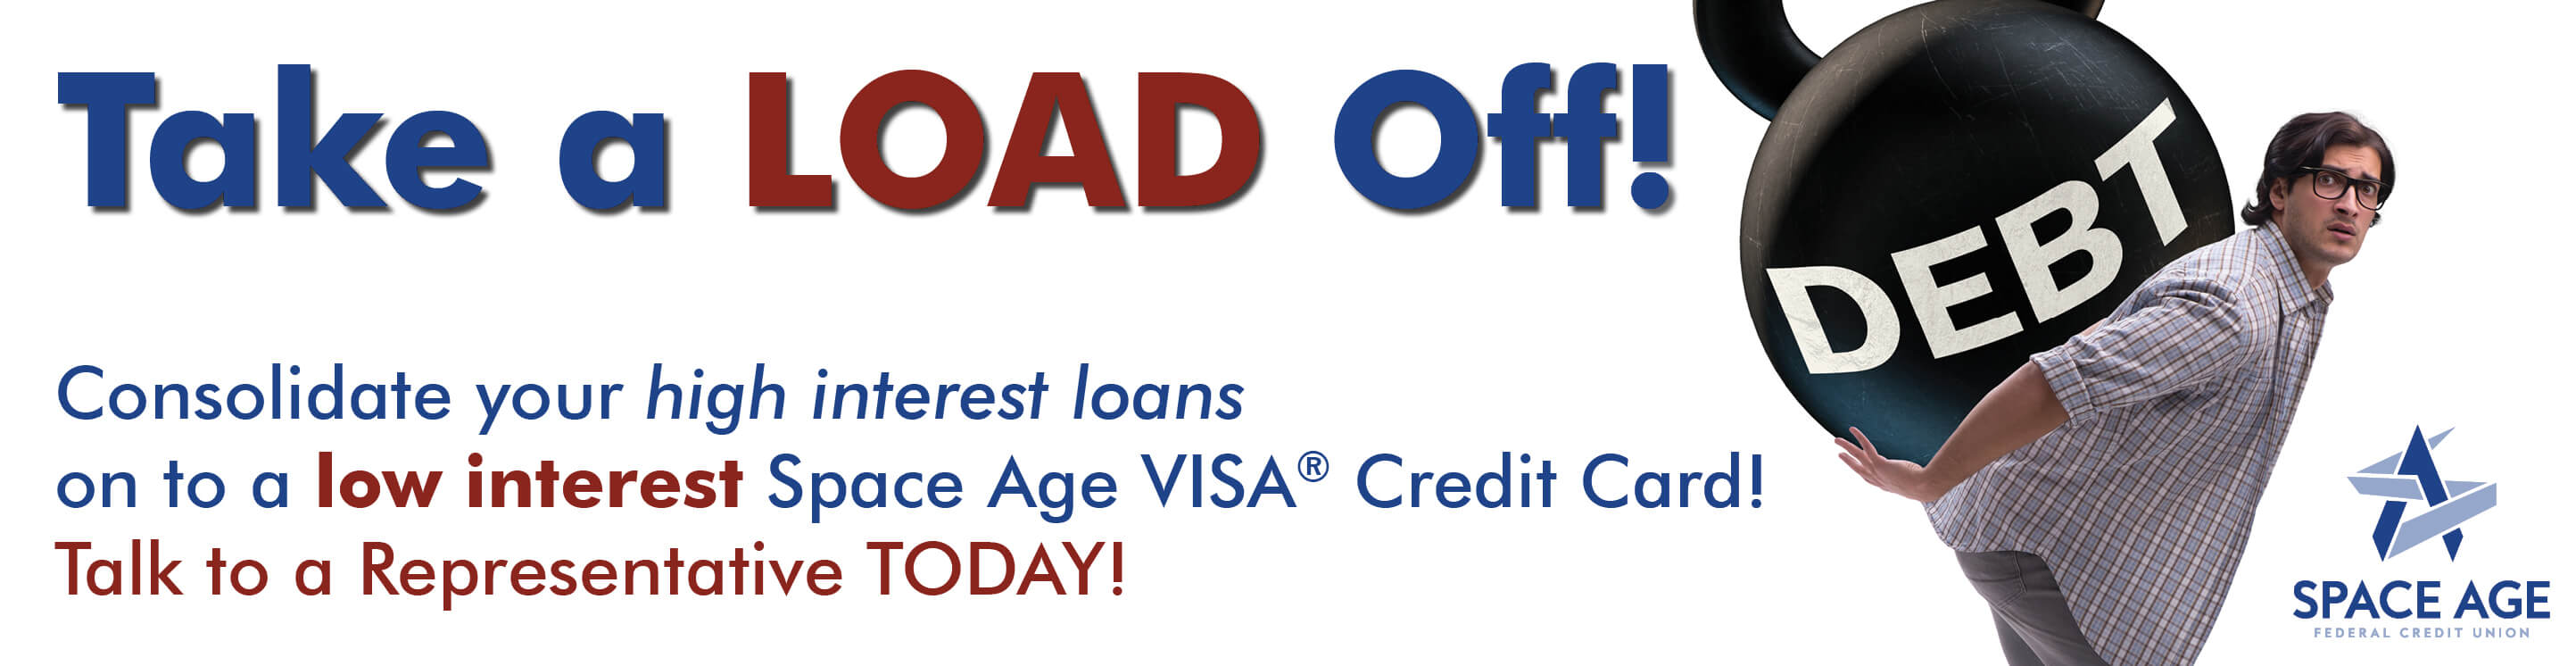 Consolidate your high interest loans on to a low interest  Space Age VISA® Credit Card! Talk to a Representative TODAY!